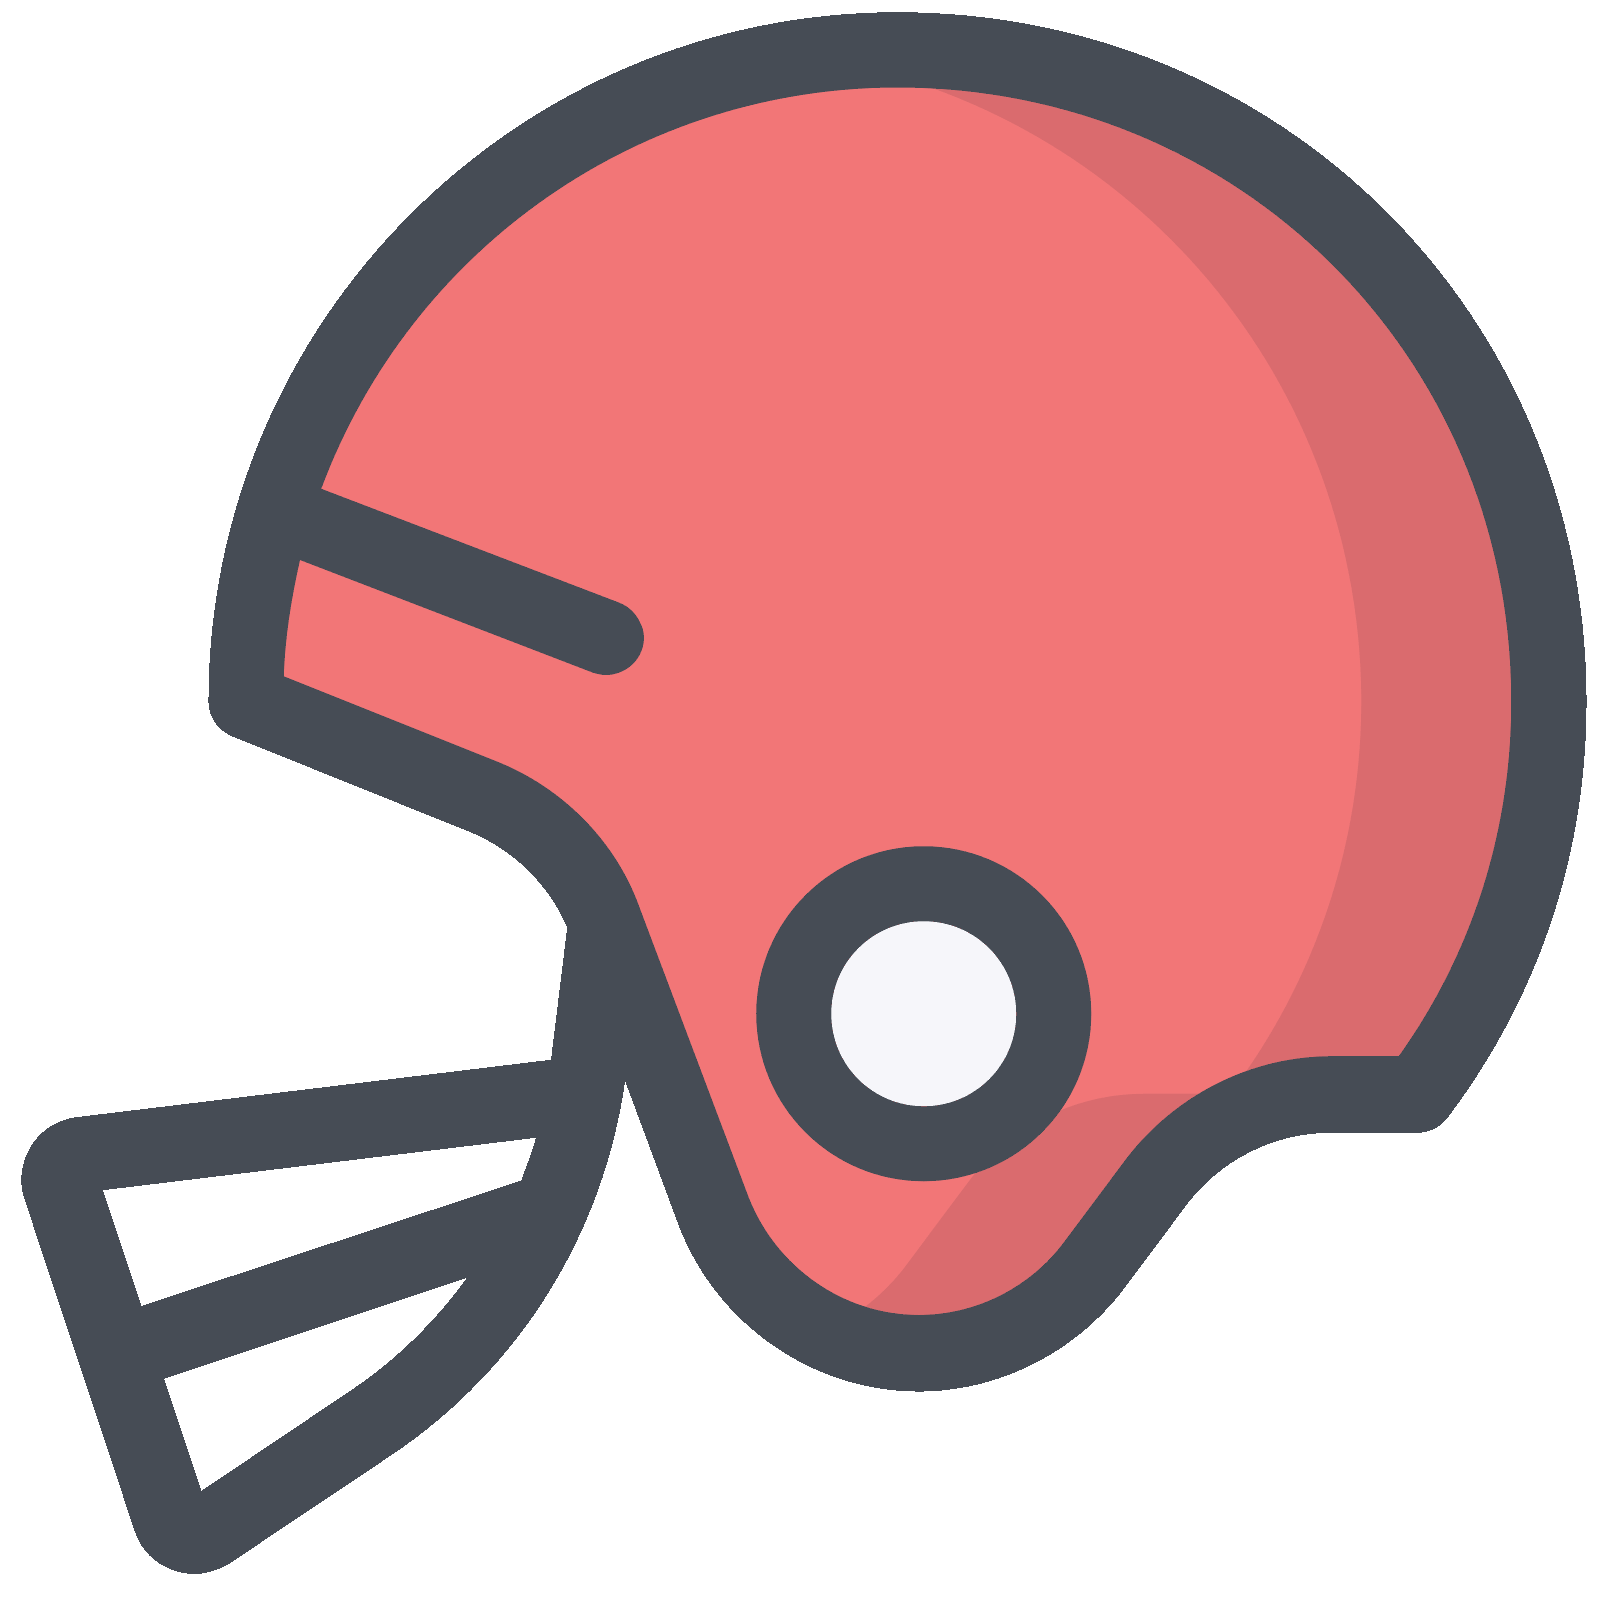 American football vector png. Helmet icon free download